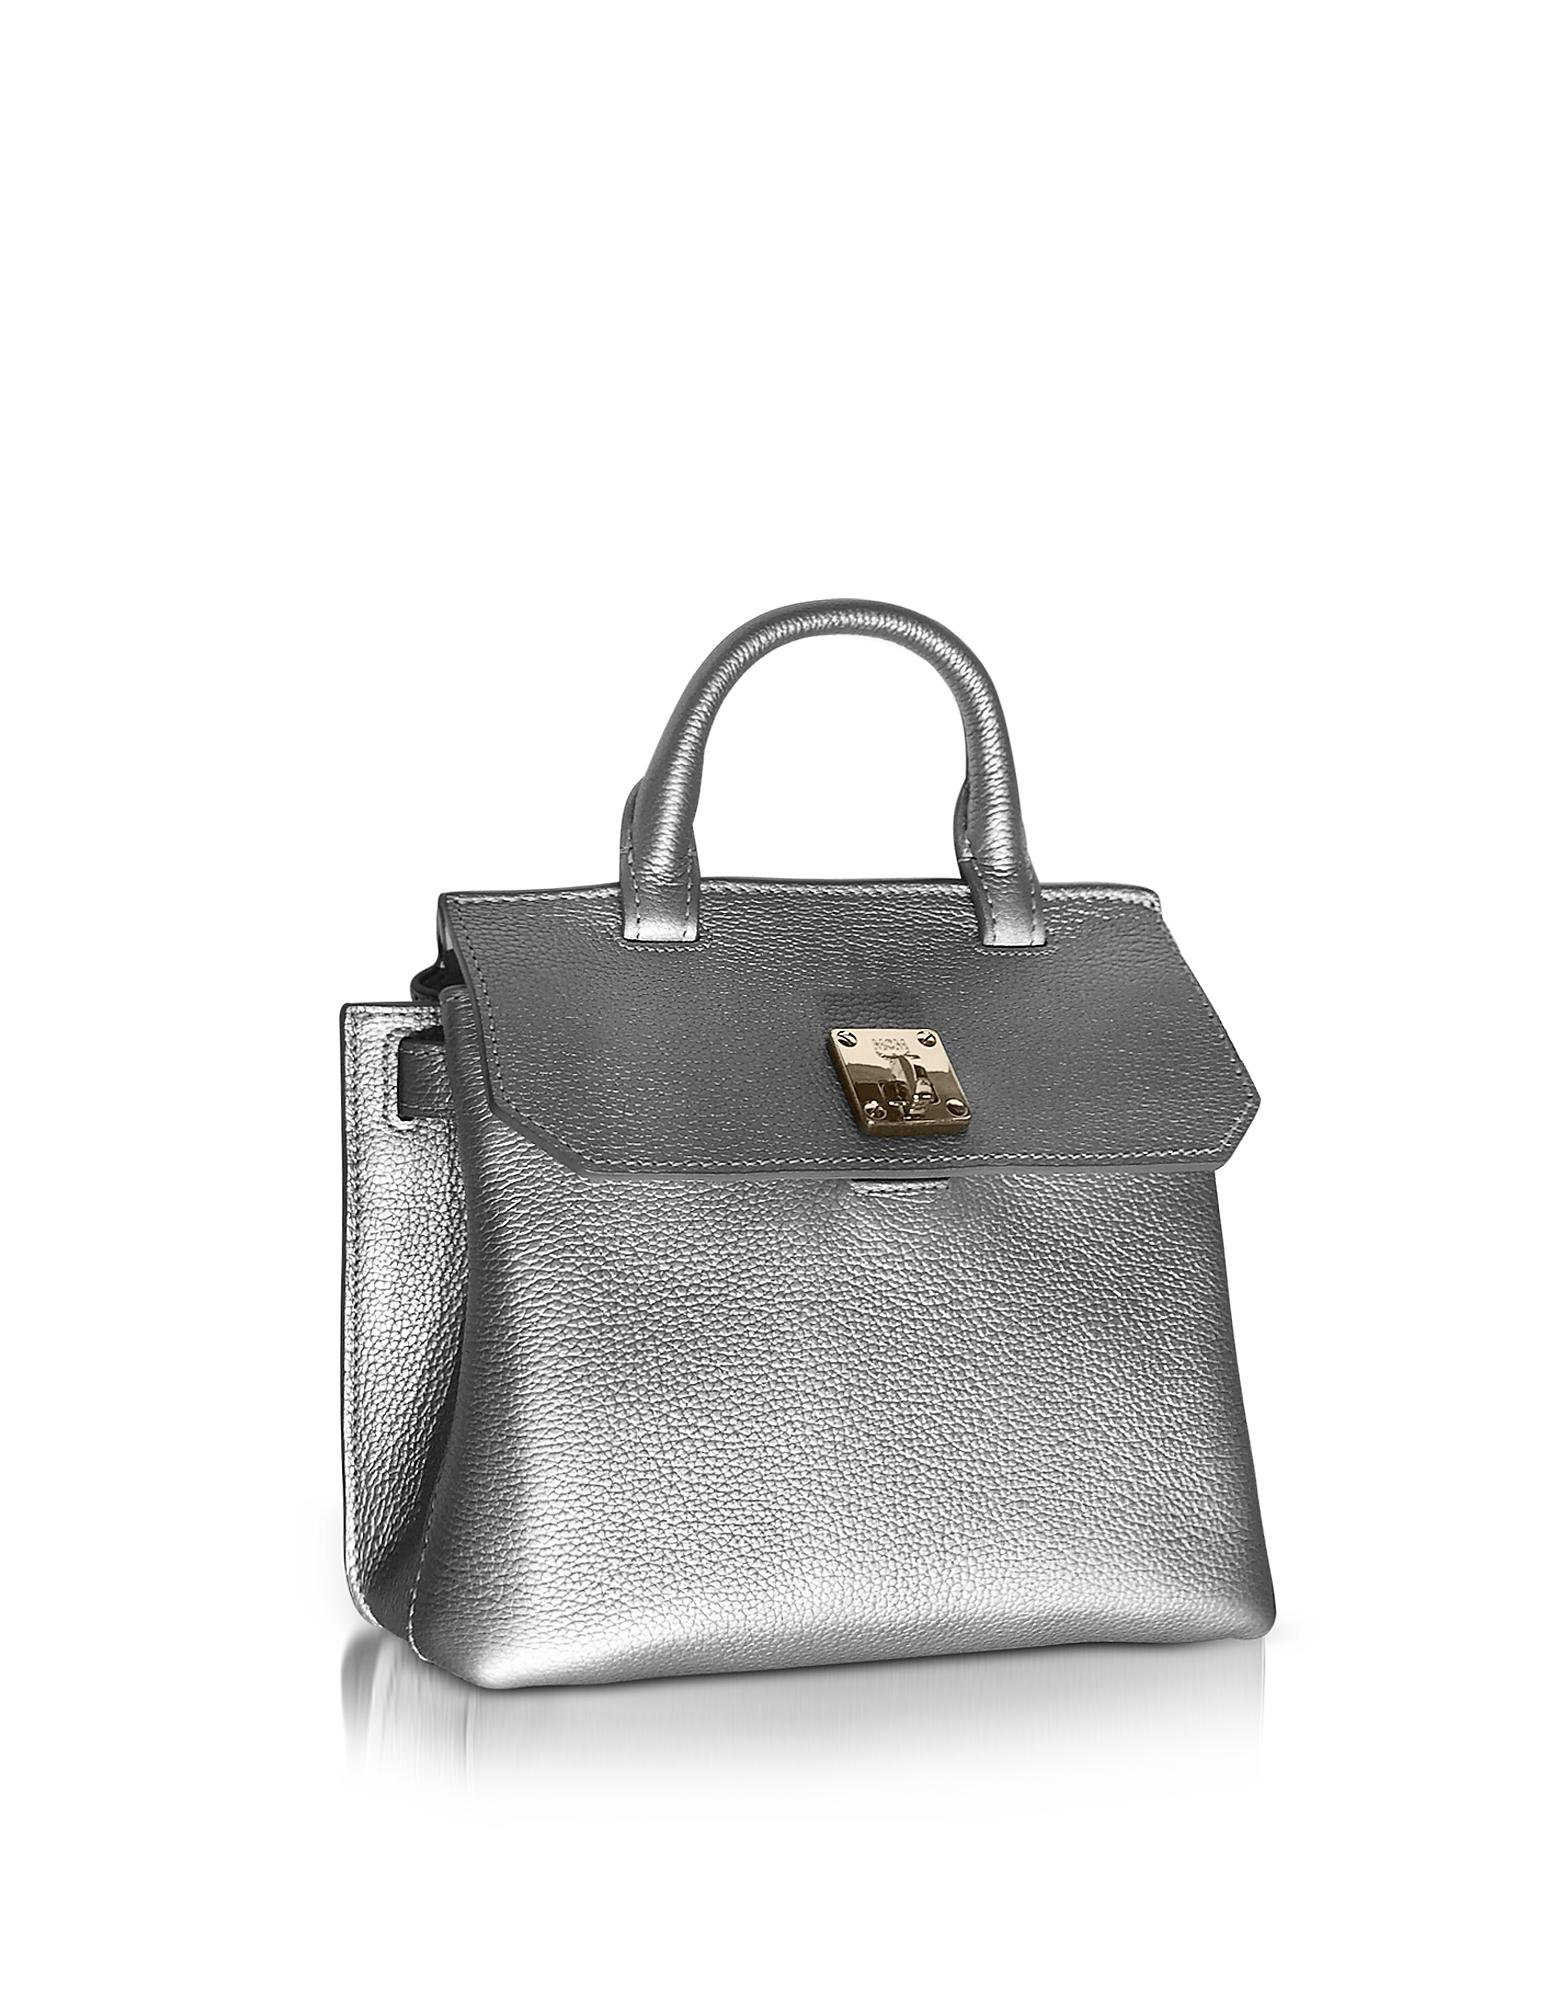 9a54bceeee89 Lyst - MCM Milla Spike Silver Park Avenue Leather Small Crossbody in ...